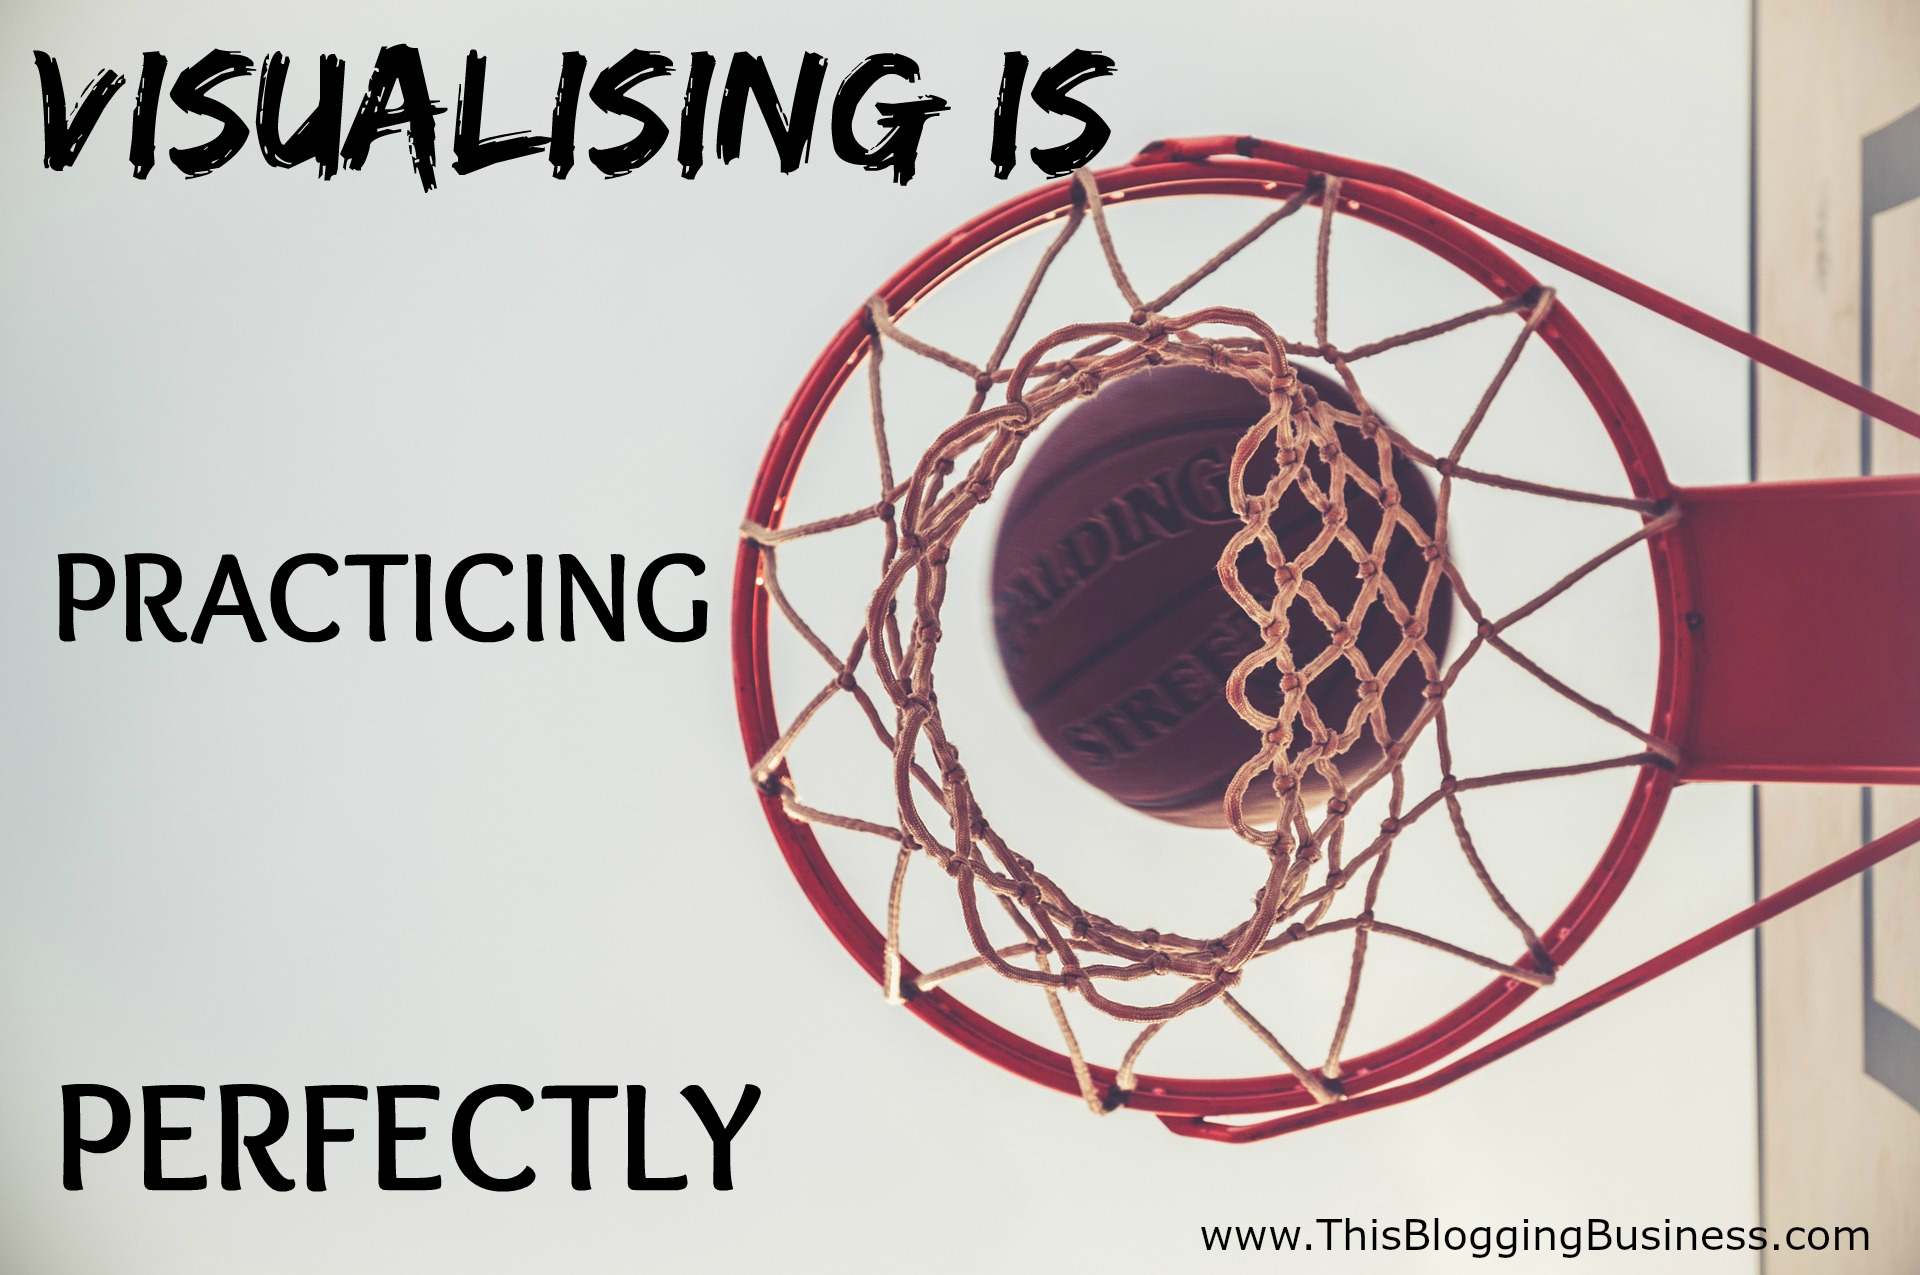 When your visualizing you have the ability to conduct practice sessions in your head; but you get to practise those sessions perfectly. This gives your mind the positive results that it needs to feed your belief. Your belief in your ability and your potential grows with each perfect practice session you have.